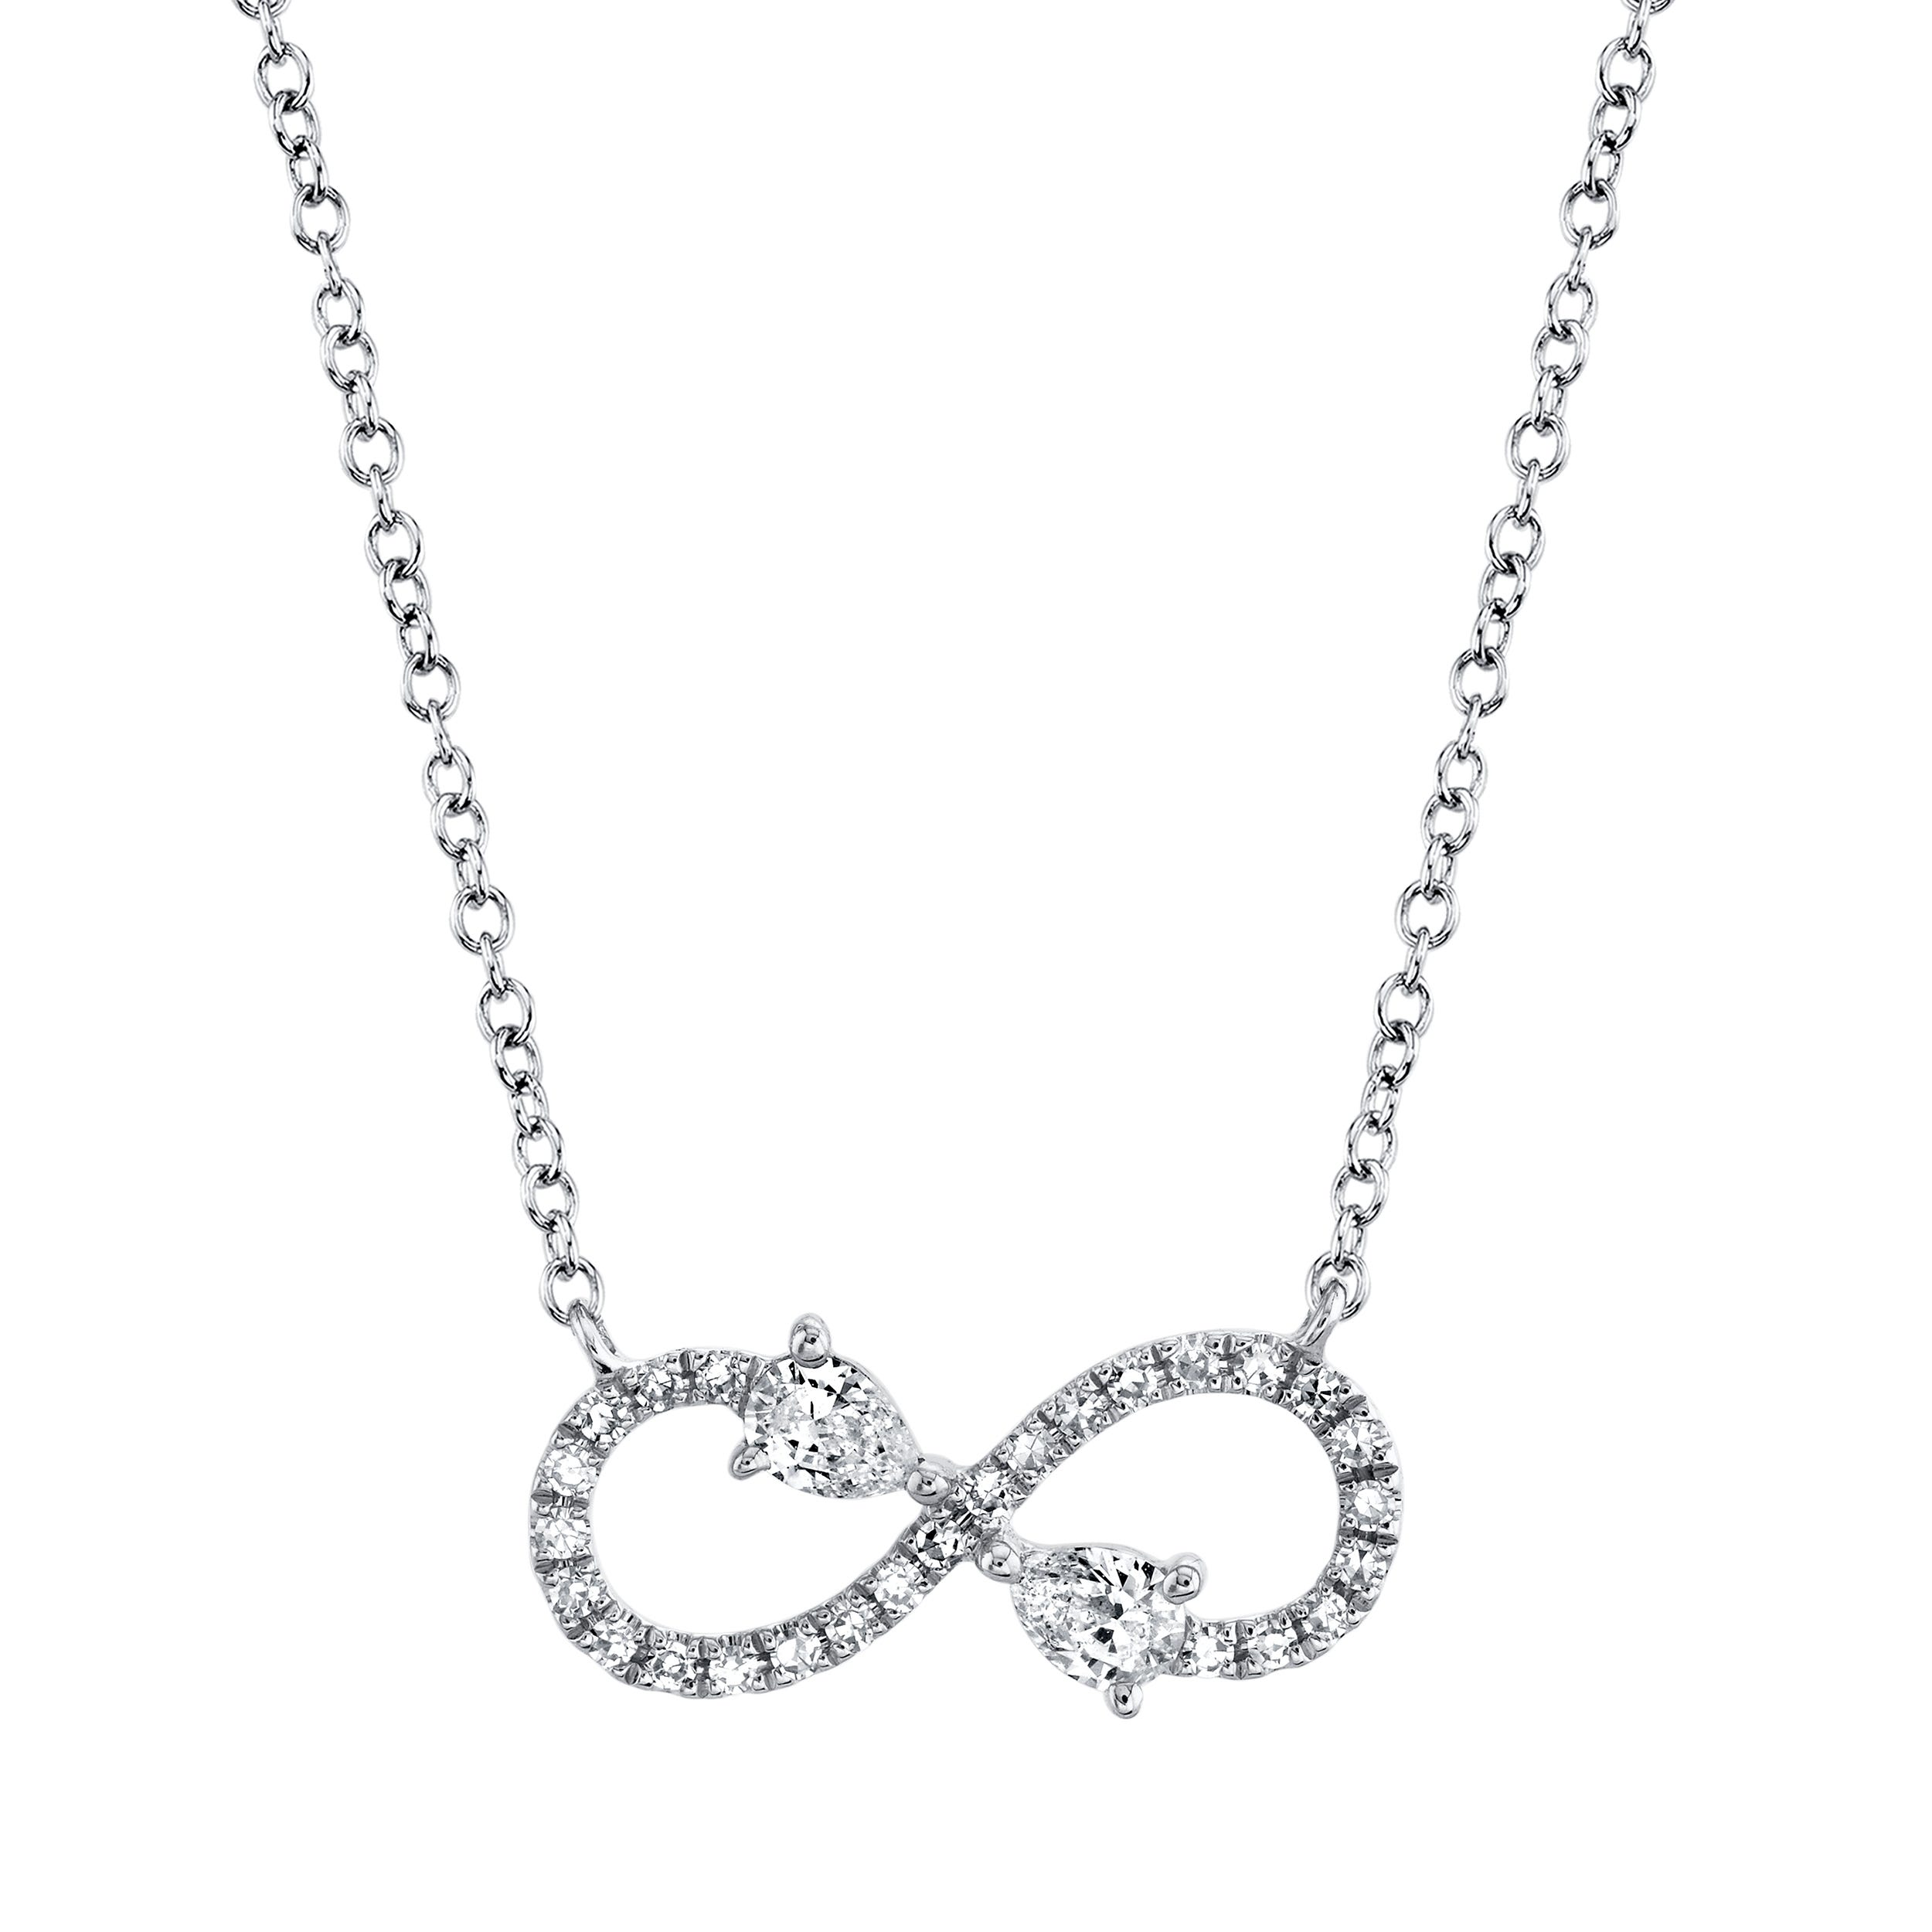 Shy Creation Diamond Infinity Necklace in 14k White Gold SC55019575